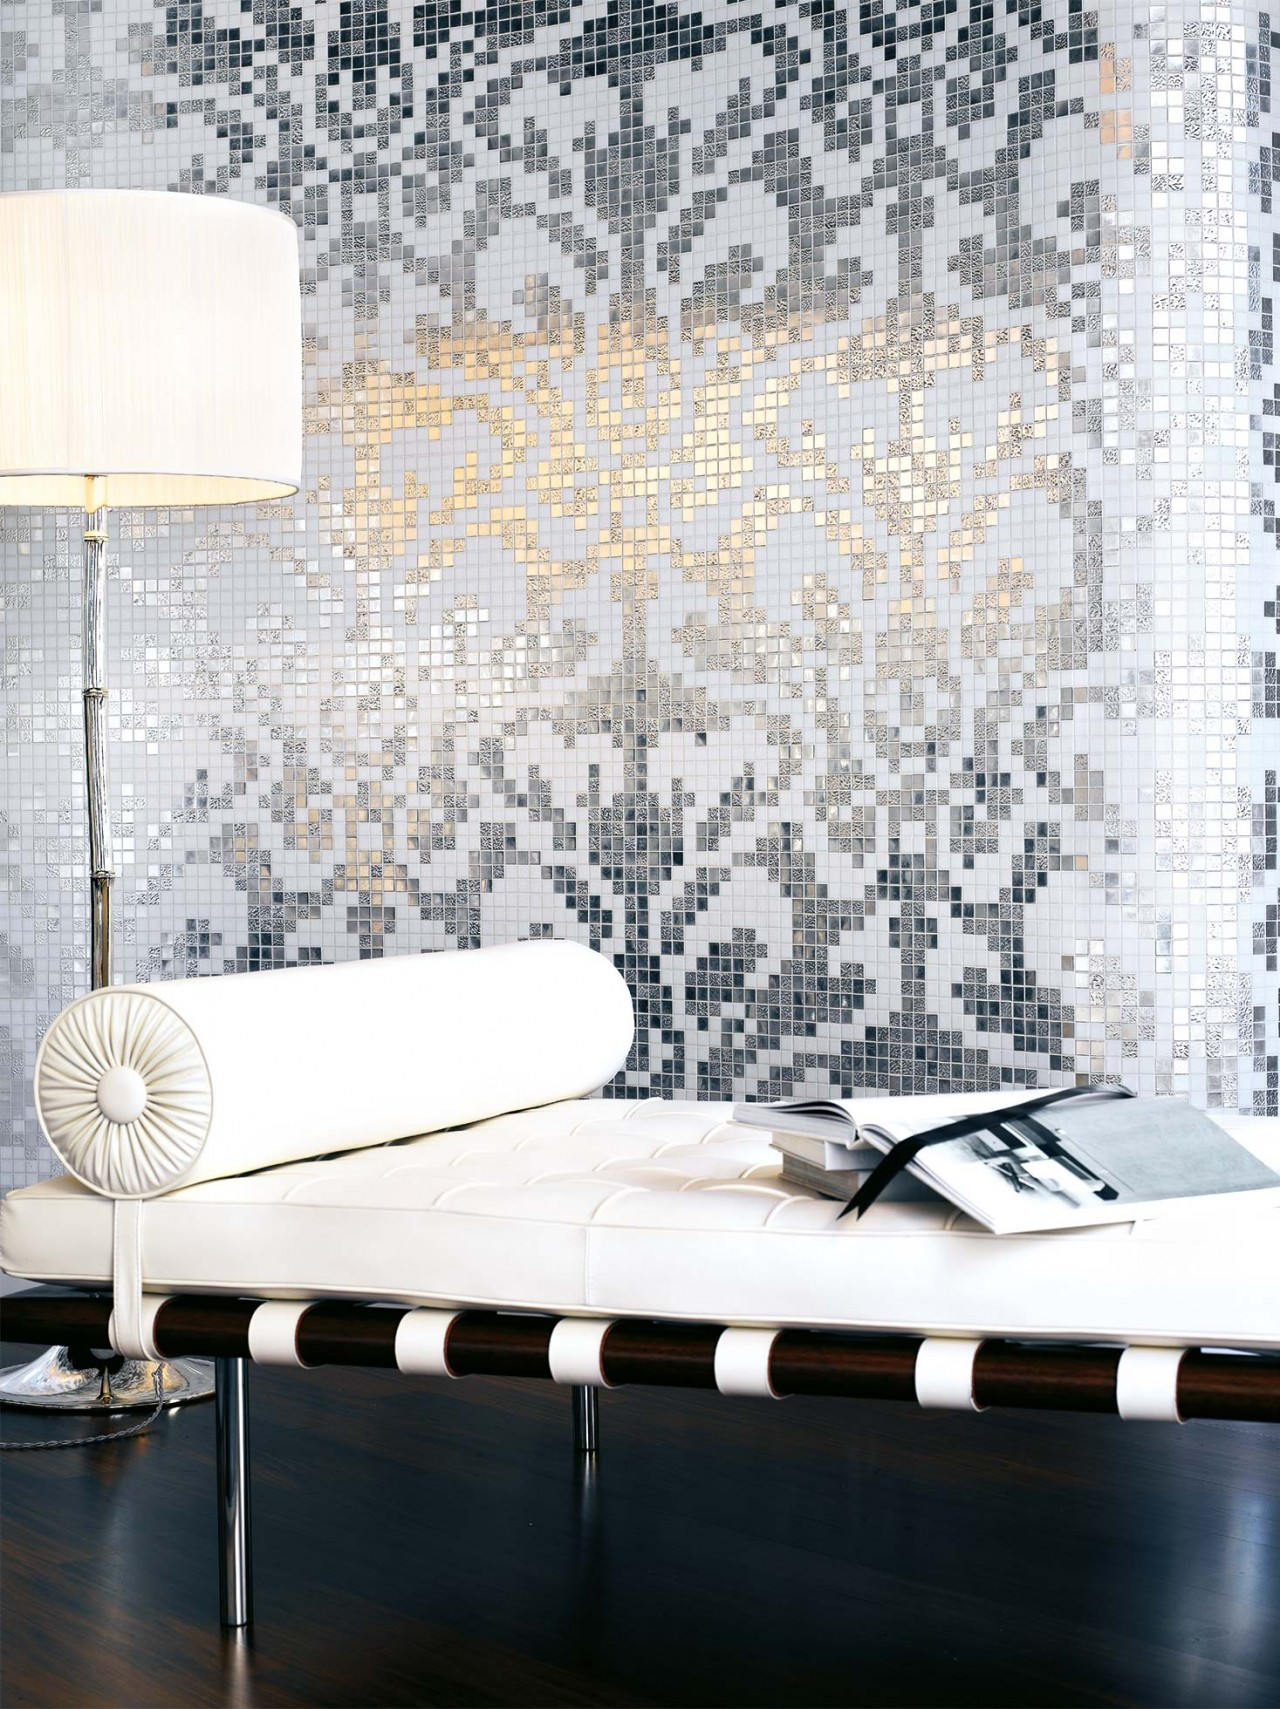 mosaik fliesen freund. Black Bedroom Furniture Sets. Home Design Ideas